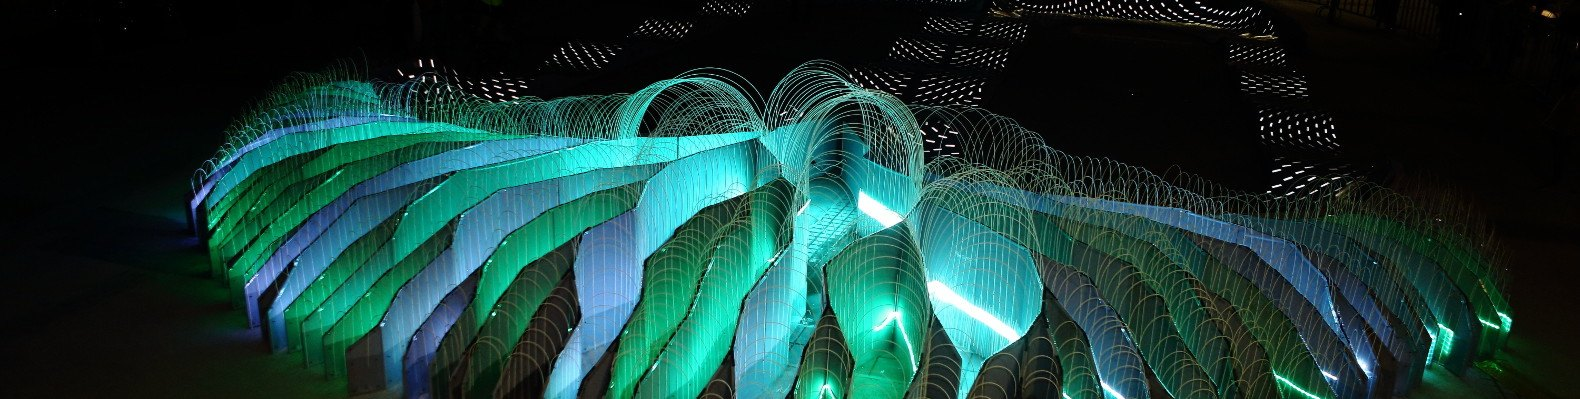 BMX track features lung-shaped LED lights that change color based on ...